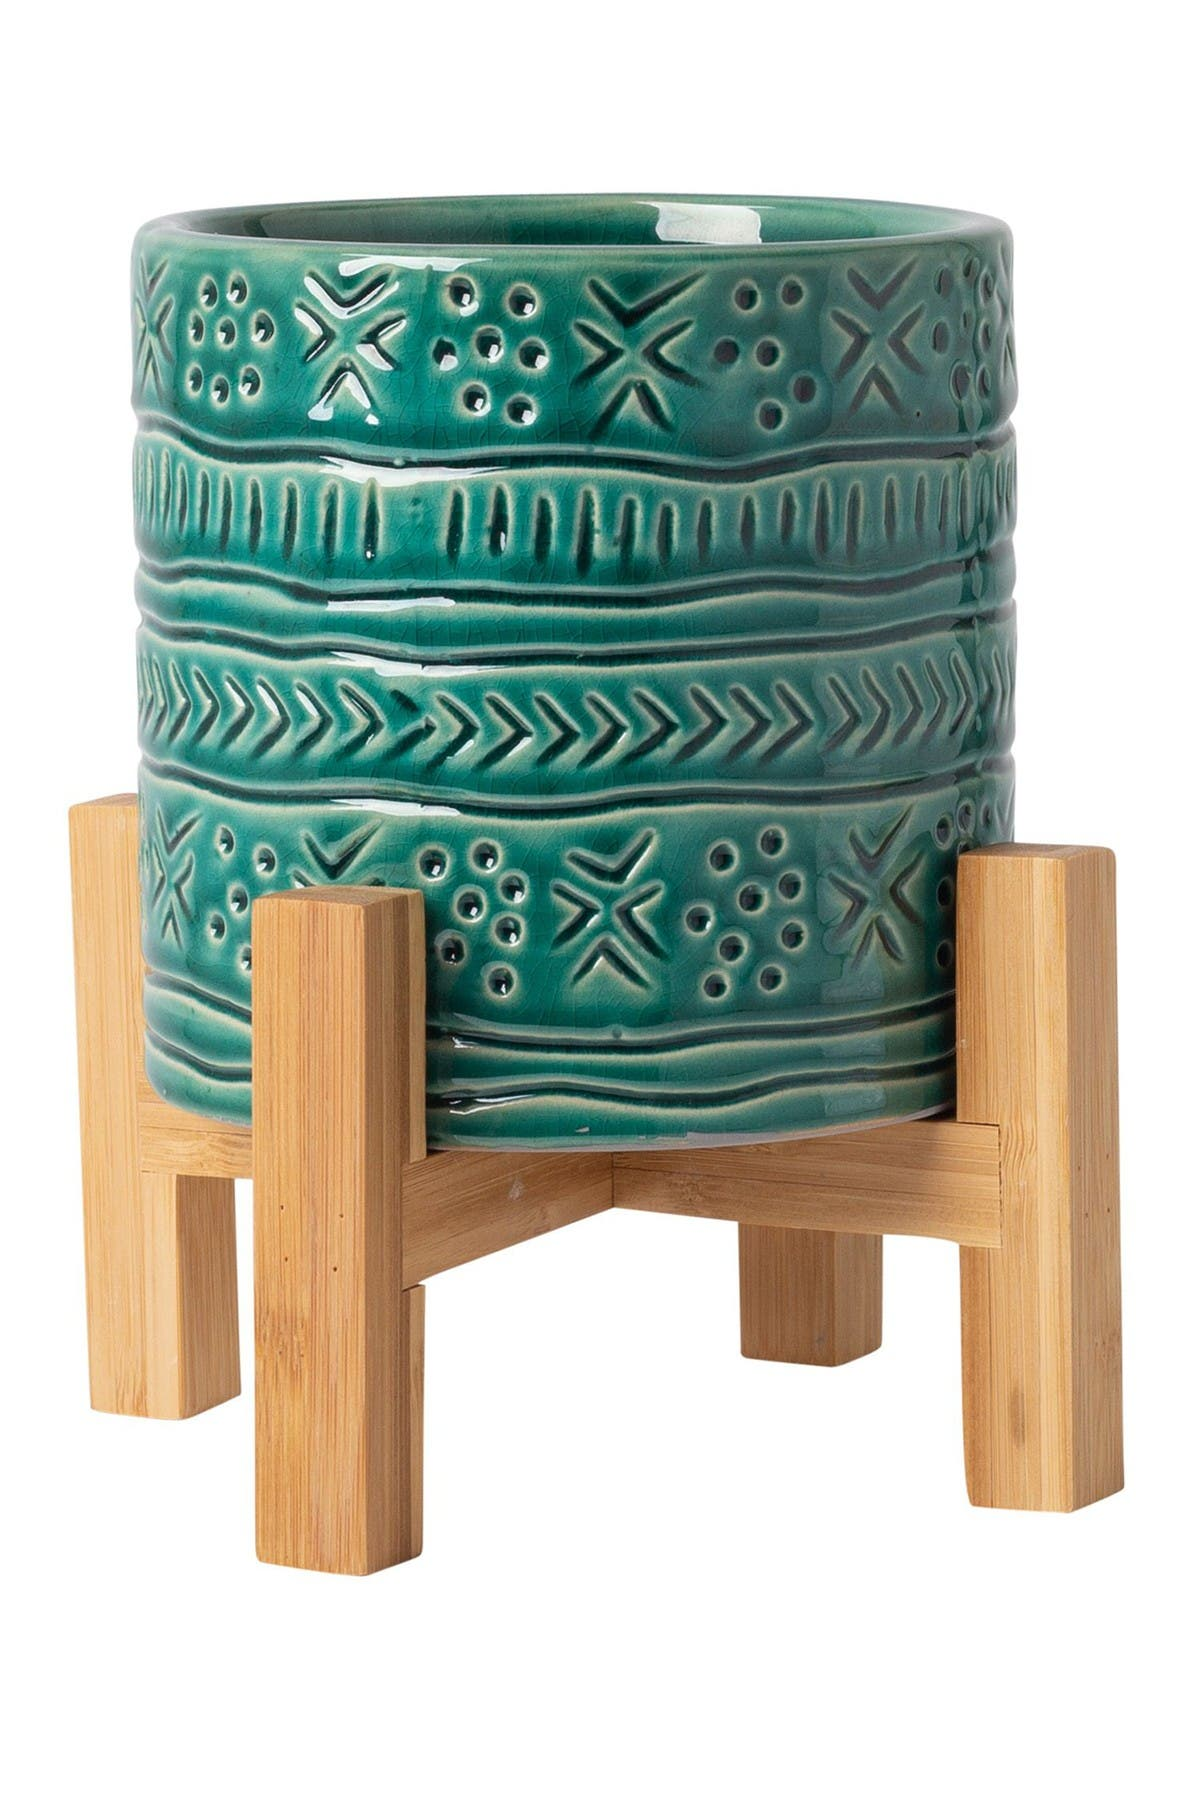 Image of Home Essentials and Beyond Teal Global Planter with Wood Stand